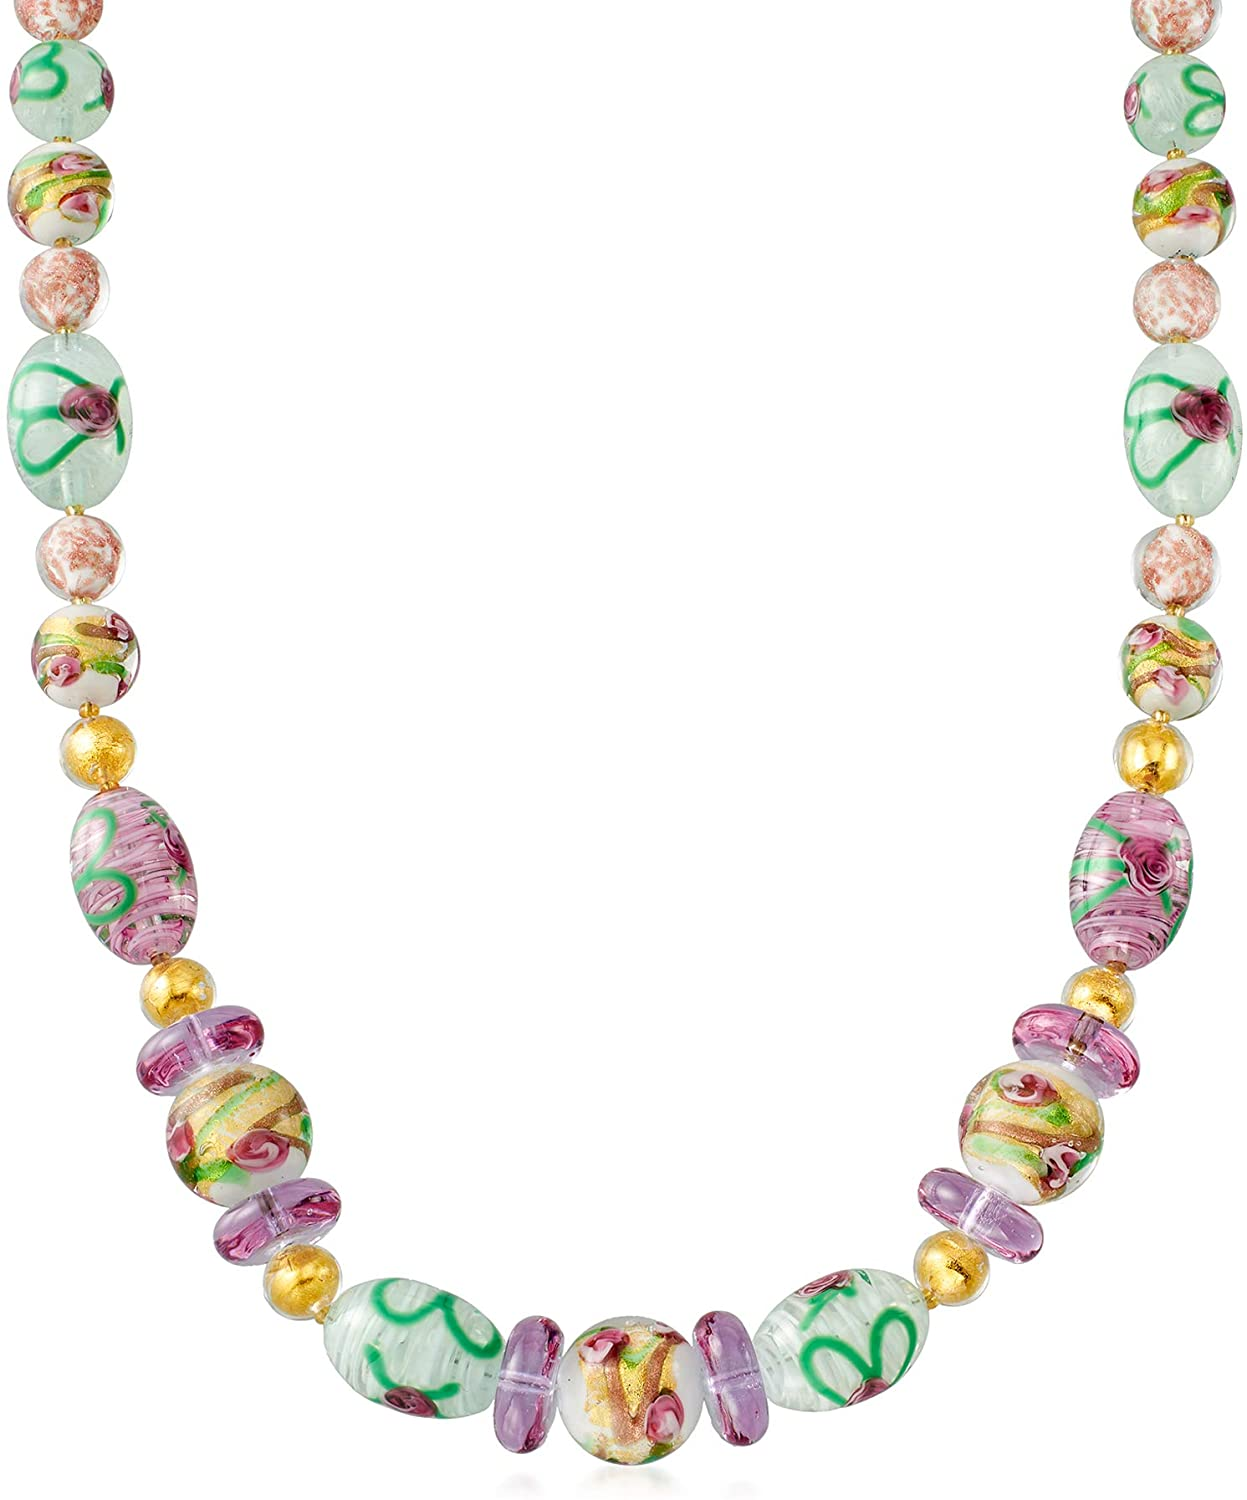 Ross-Simons Italian Floral Murano Glass Bead Necklace in 18kt Gold Over Sterling